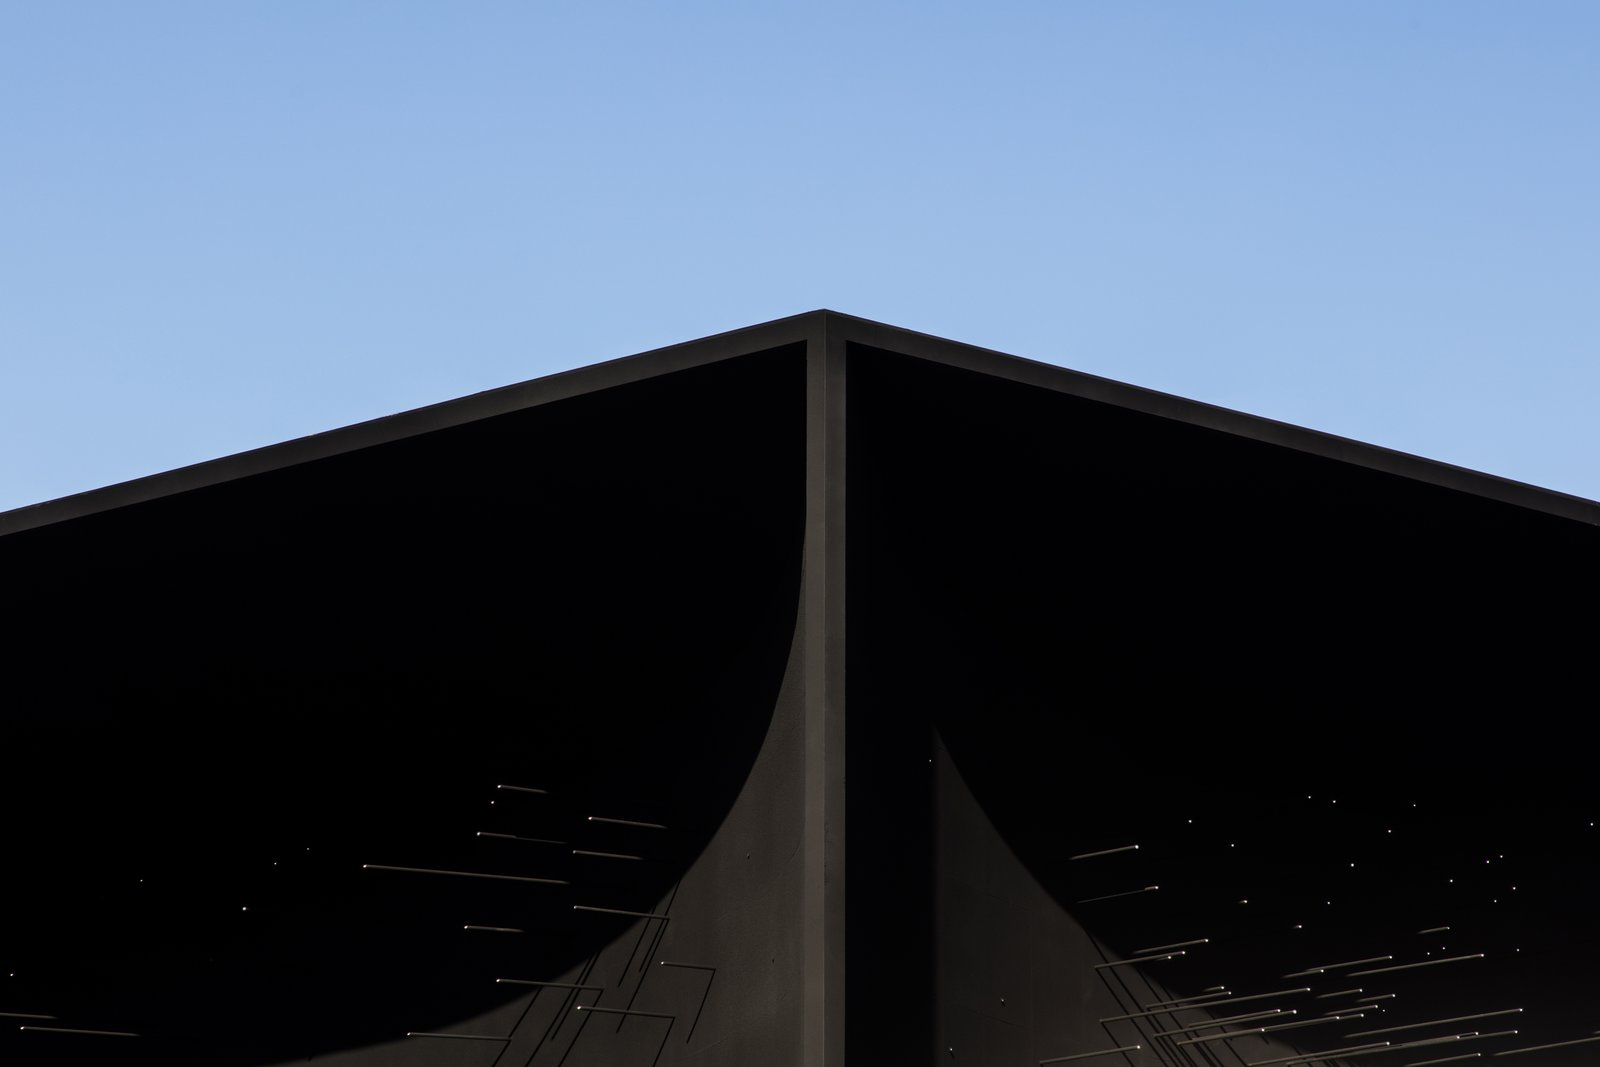 The building also references the traditional temple architecture of South Korea.